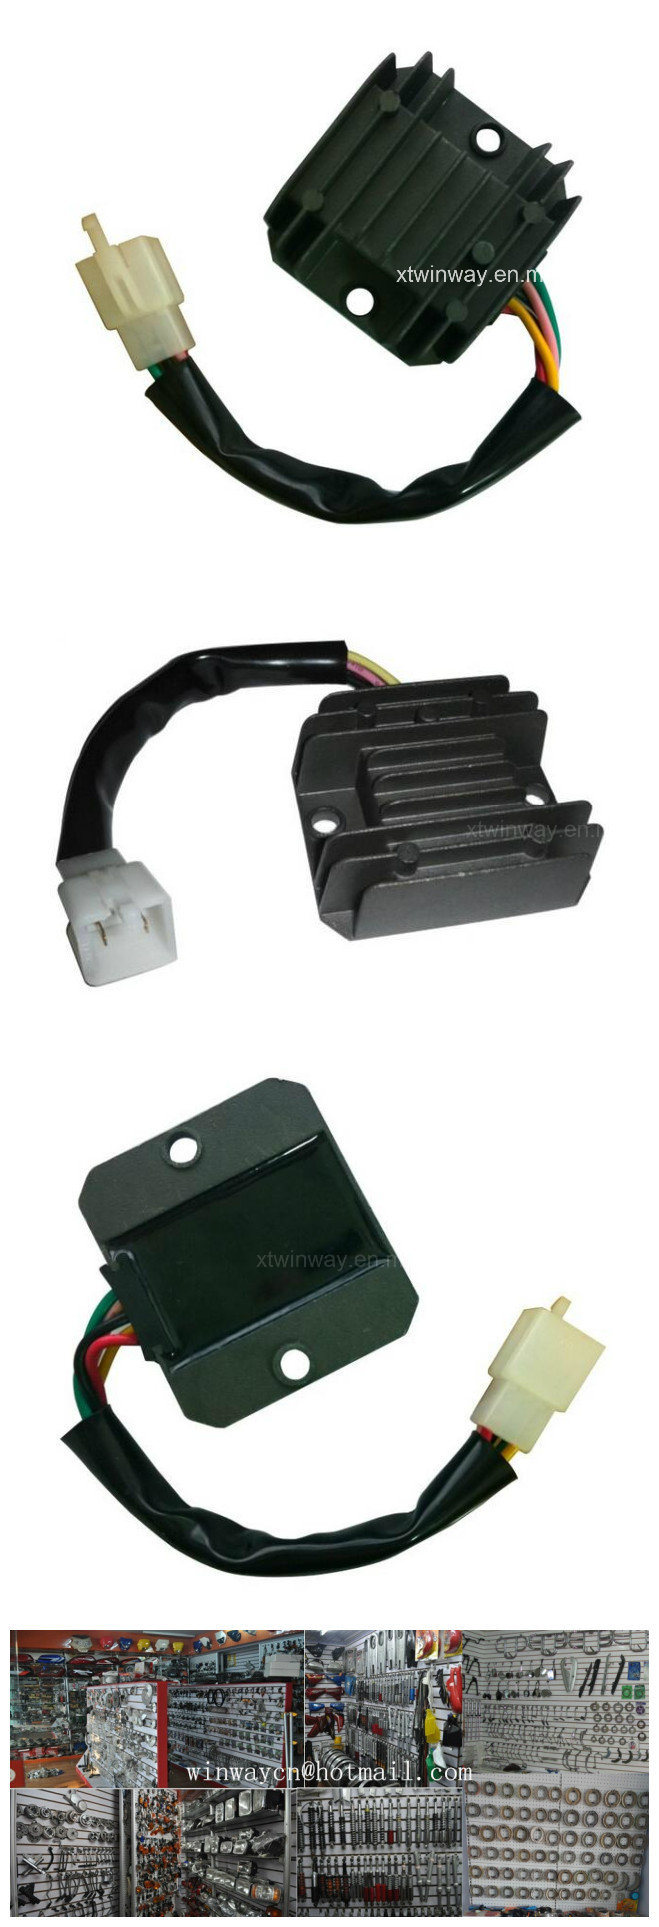 Ww8202 Cg125 Motorcycle Voltage Regulator Rectifier 12v Dc China. Our Main Product Is Brake Shoe Shock Absorber Speedometer Head Light Use For Cg125 Ax100 Wy125 Bajaj100150180. Wiring. Rectifier 5 Diagram Pin Wiring Regulator Wy125c At Scoala.co